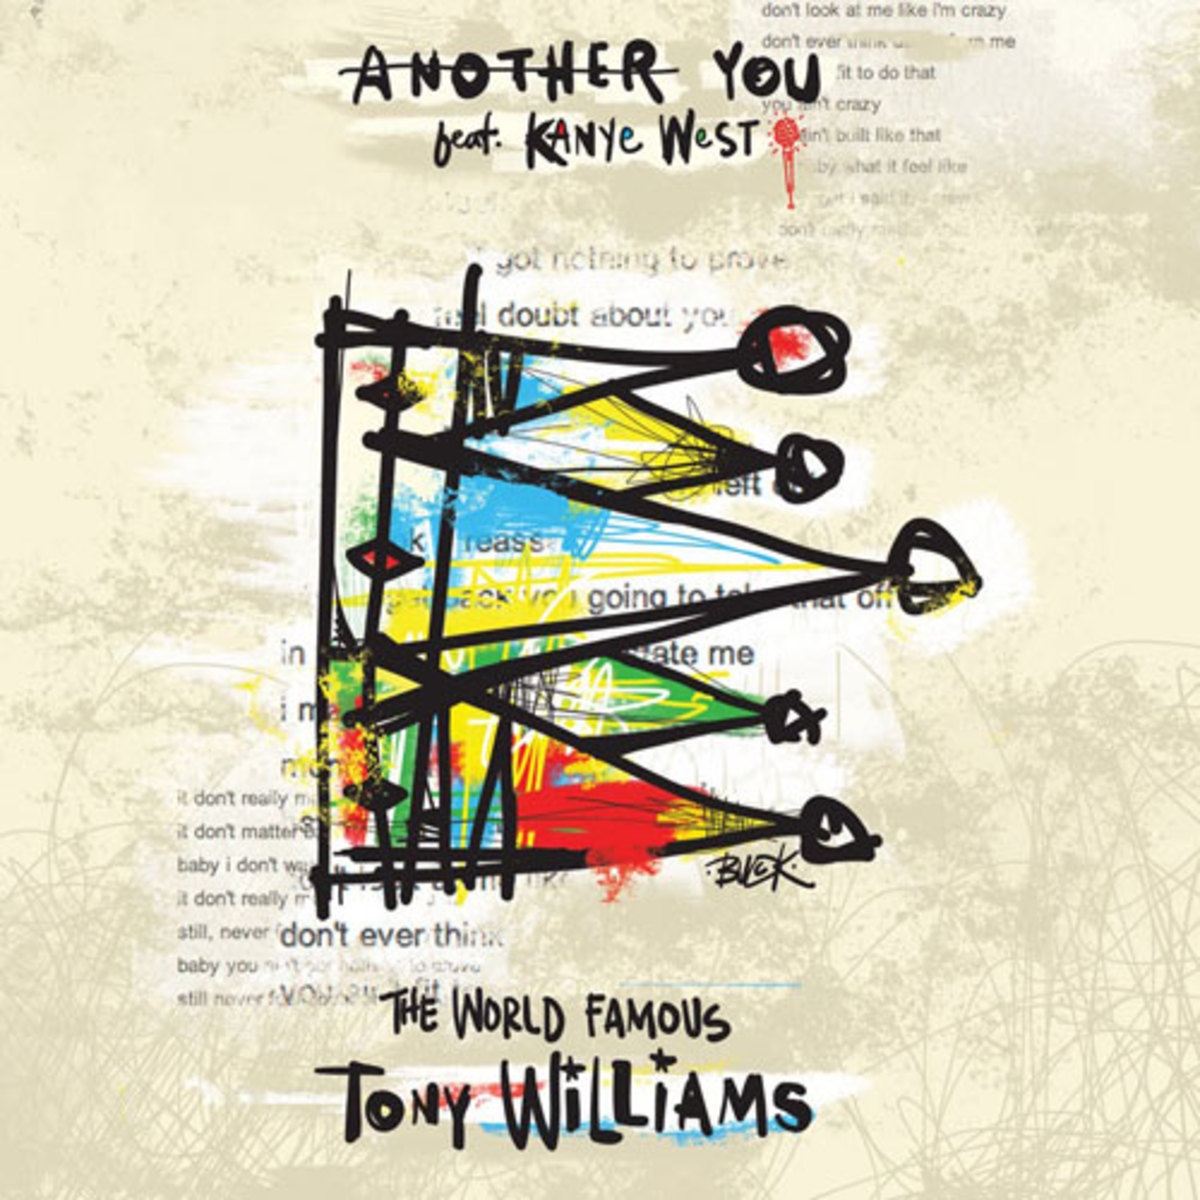 tonywilliams-anotheryou2.jpg